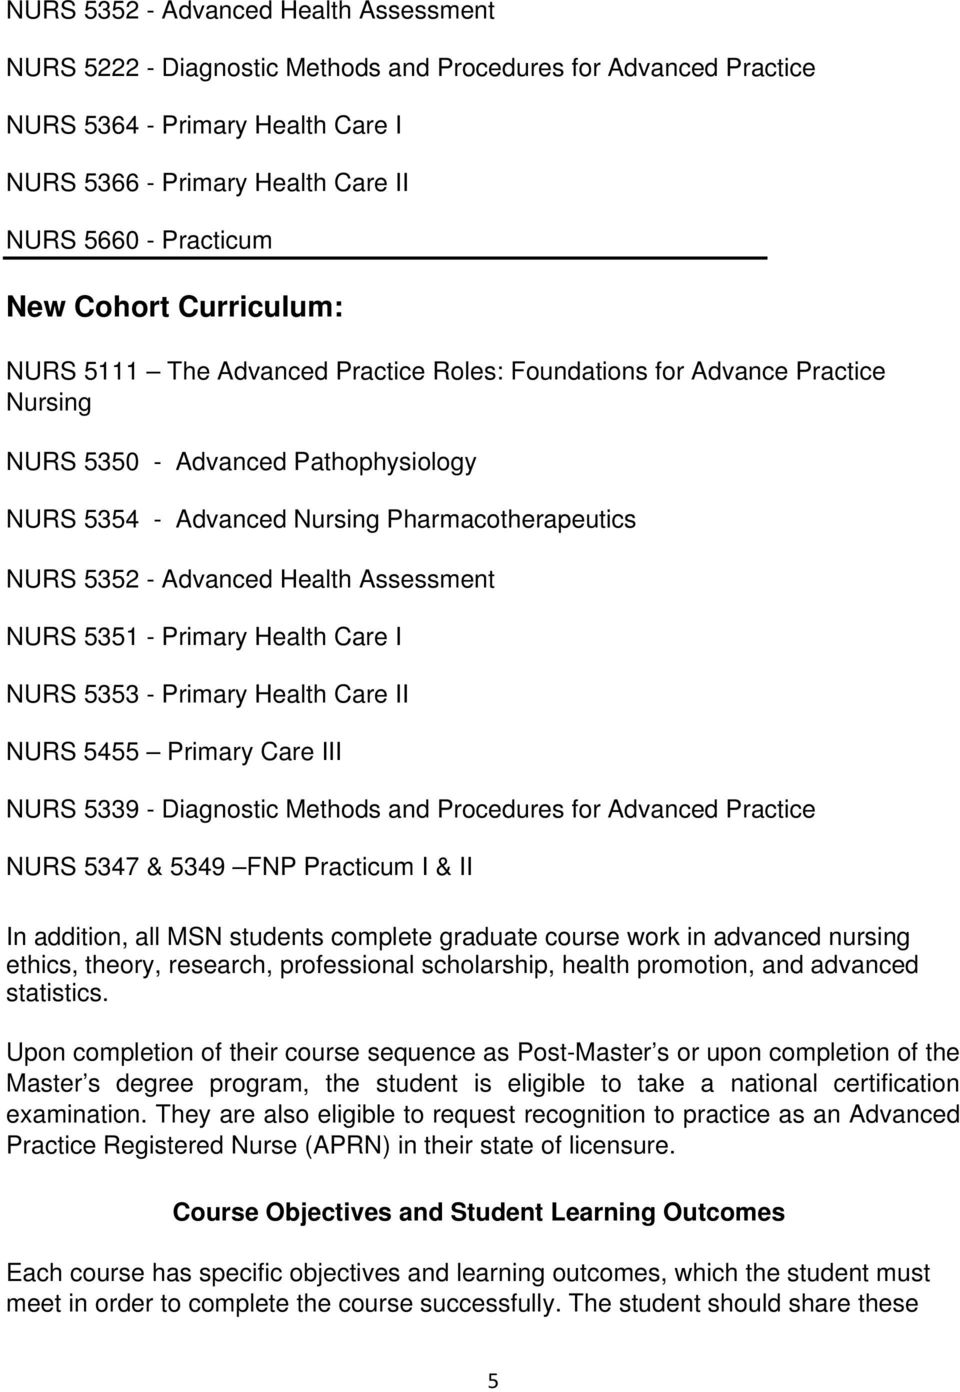 - Advanced Health Assessment NURS 5351 - Primary Health Care I NURS 5353 - Primary Health Care II NURS 5455 Primary Care III NURS 5339 - Diagnostic Methods and Procedures for Advanced Practice NURS